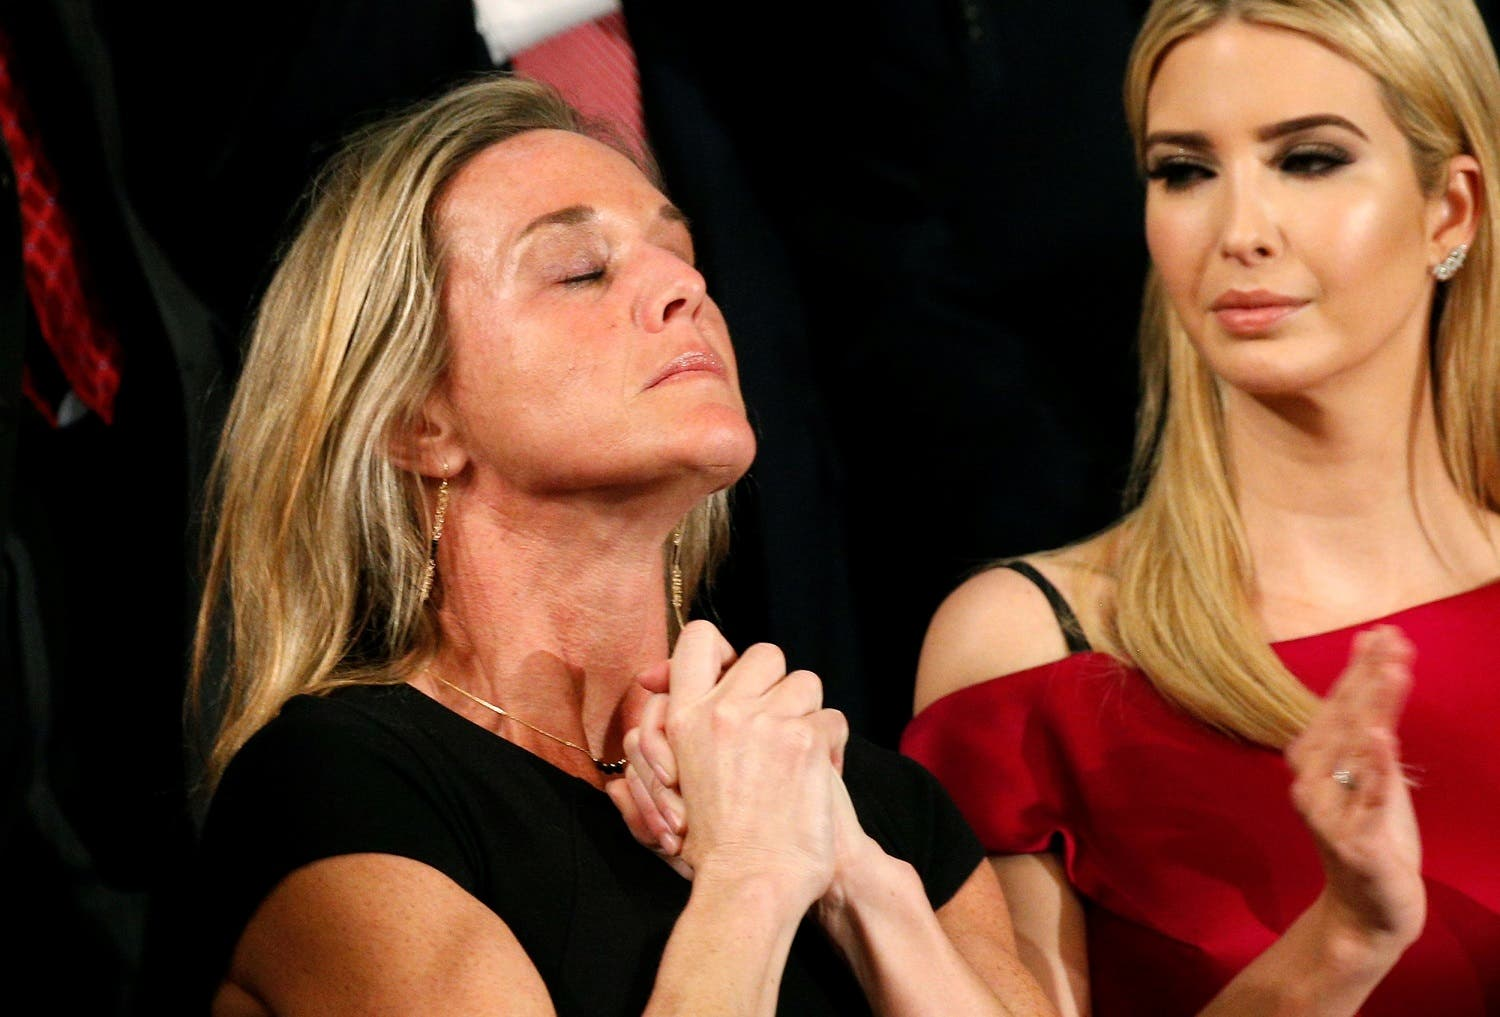 """Carryn Owens, widow of Senior Chief Petty Officer William """"Ryan"""" Owens who was killed during a raid in Yemen, applauds with Ivanka Trump (R), daughter of U.S. President Donald Trump, after being mentioned by the president (Photo: Reuters/Kevin Lamarque)"""